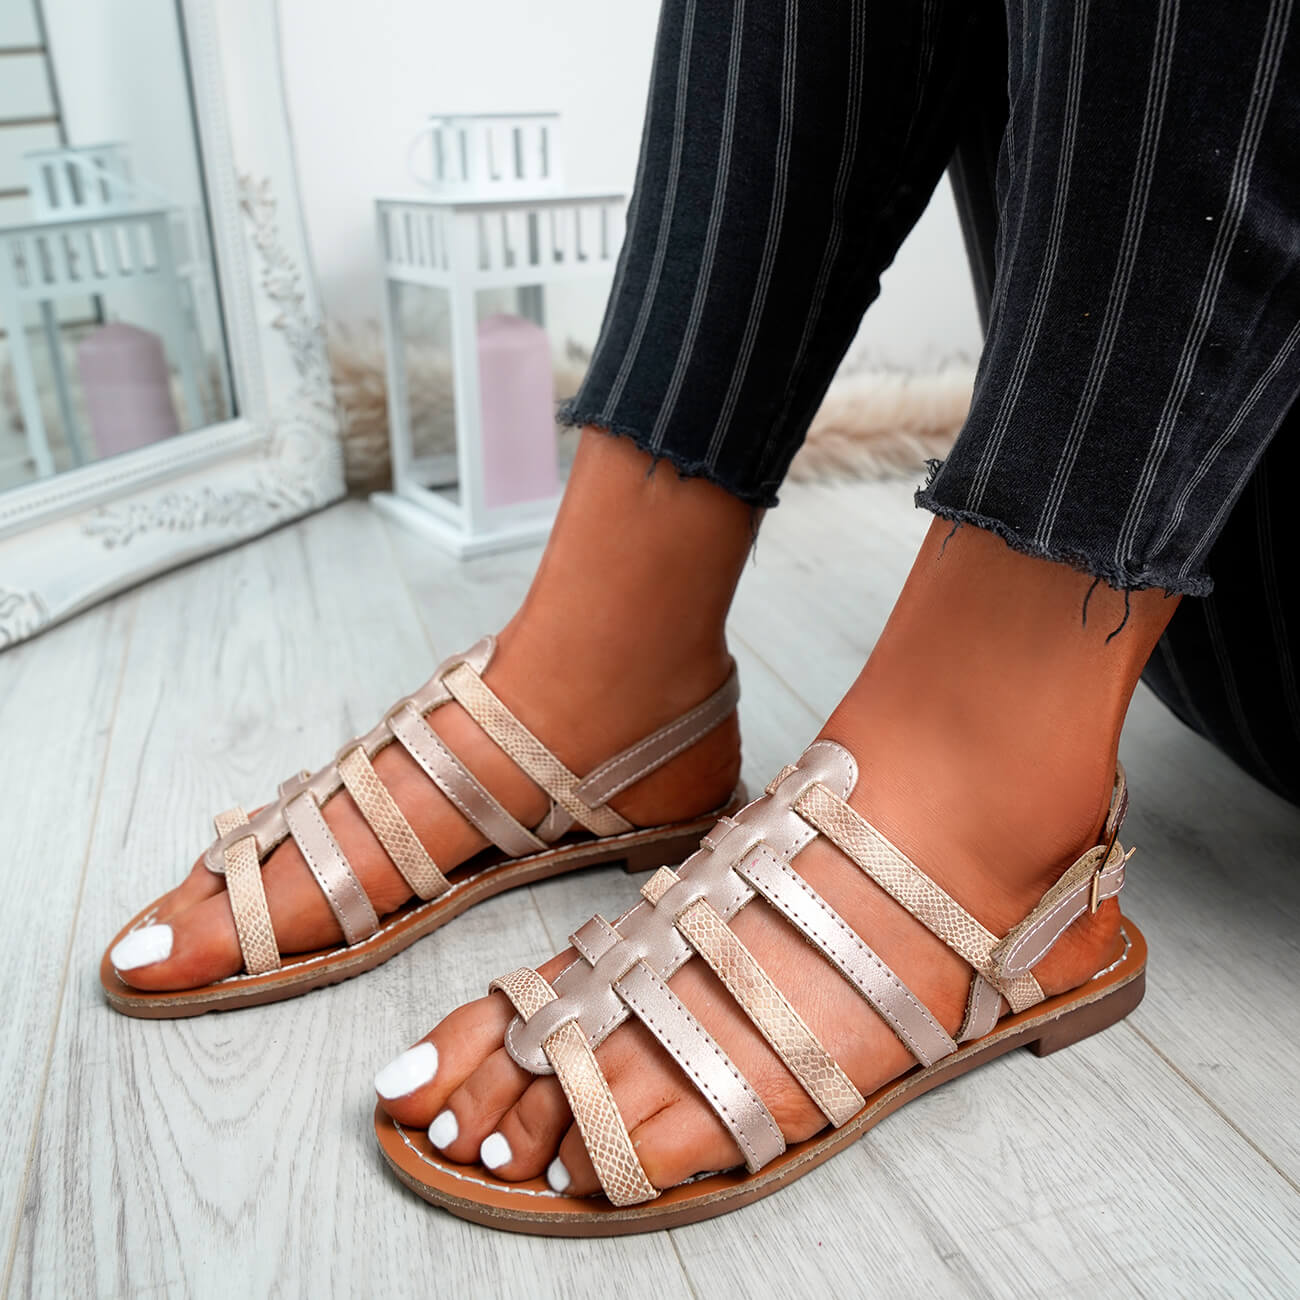 WOMENS-LADIES-BUCKLE-STRAP-FLAT-SUMMER-SANDALS-CASUAL-HOLIDAY-COMFY-SHOES-SIZE thumbnail 19